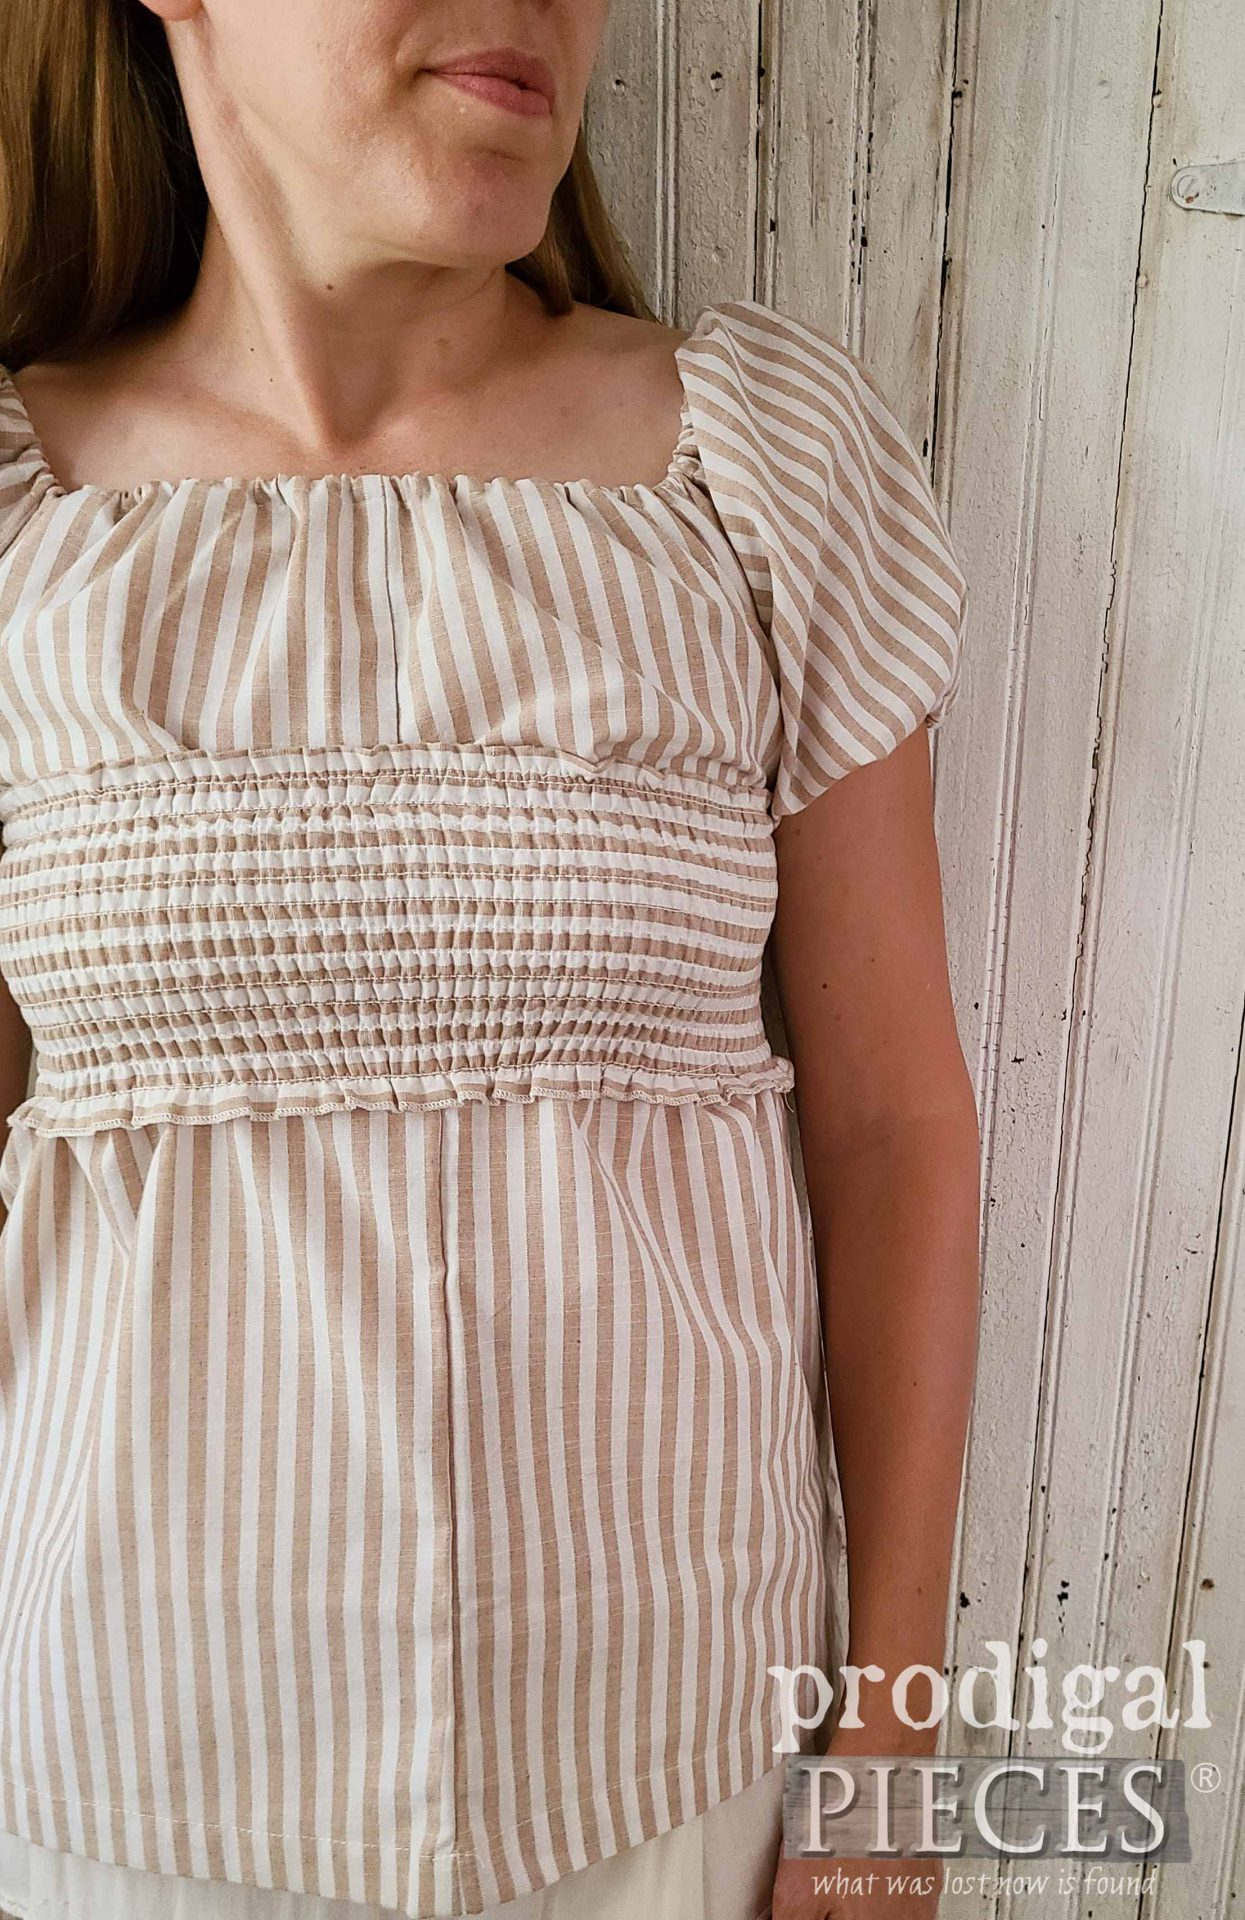 Cotton Striped Smocked Blouse for Ladies' Fashion by Larissa of Prodigal Pieces | prodigalpieces.com #prodigalpieces #fashion #style #women #sewing #refashion